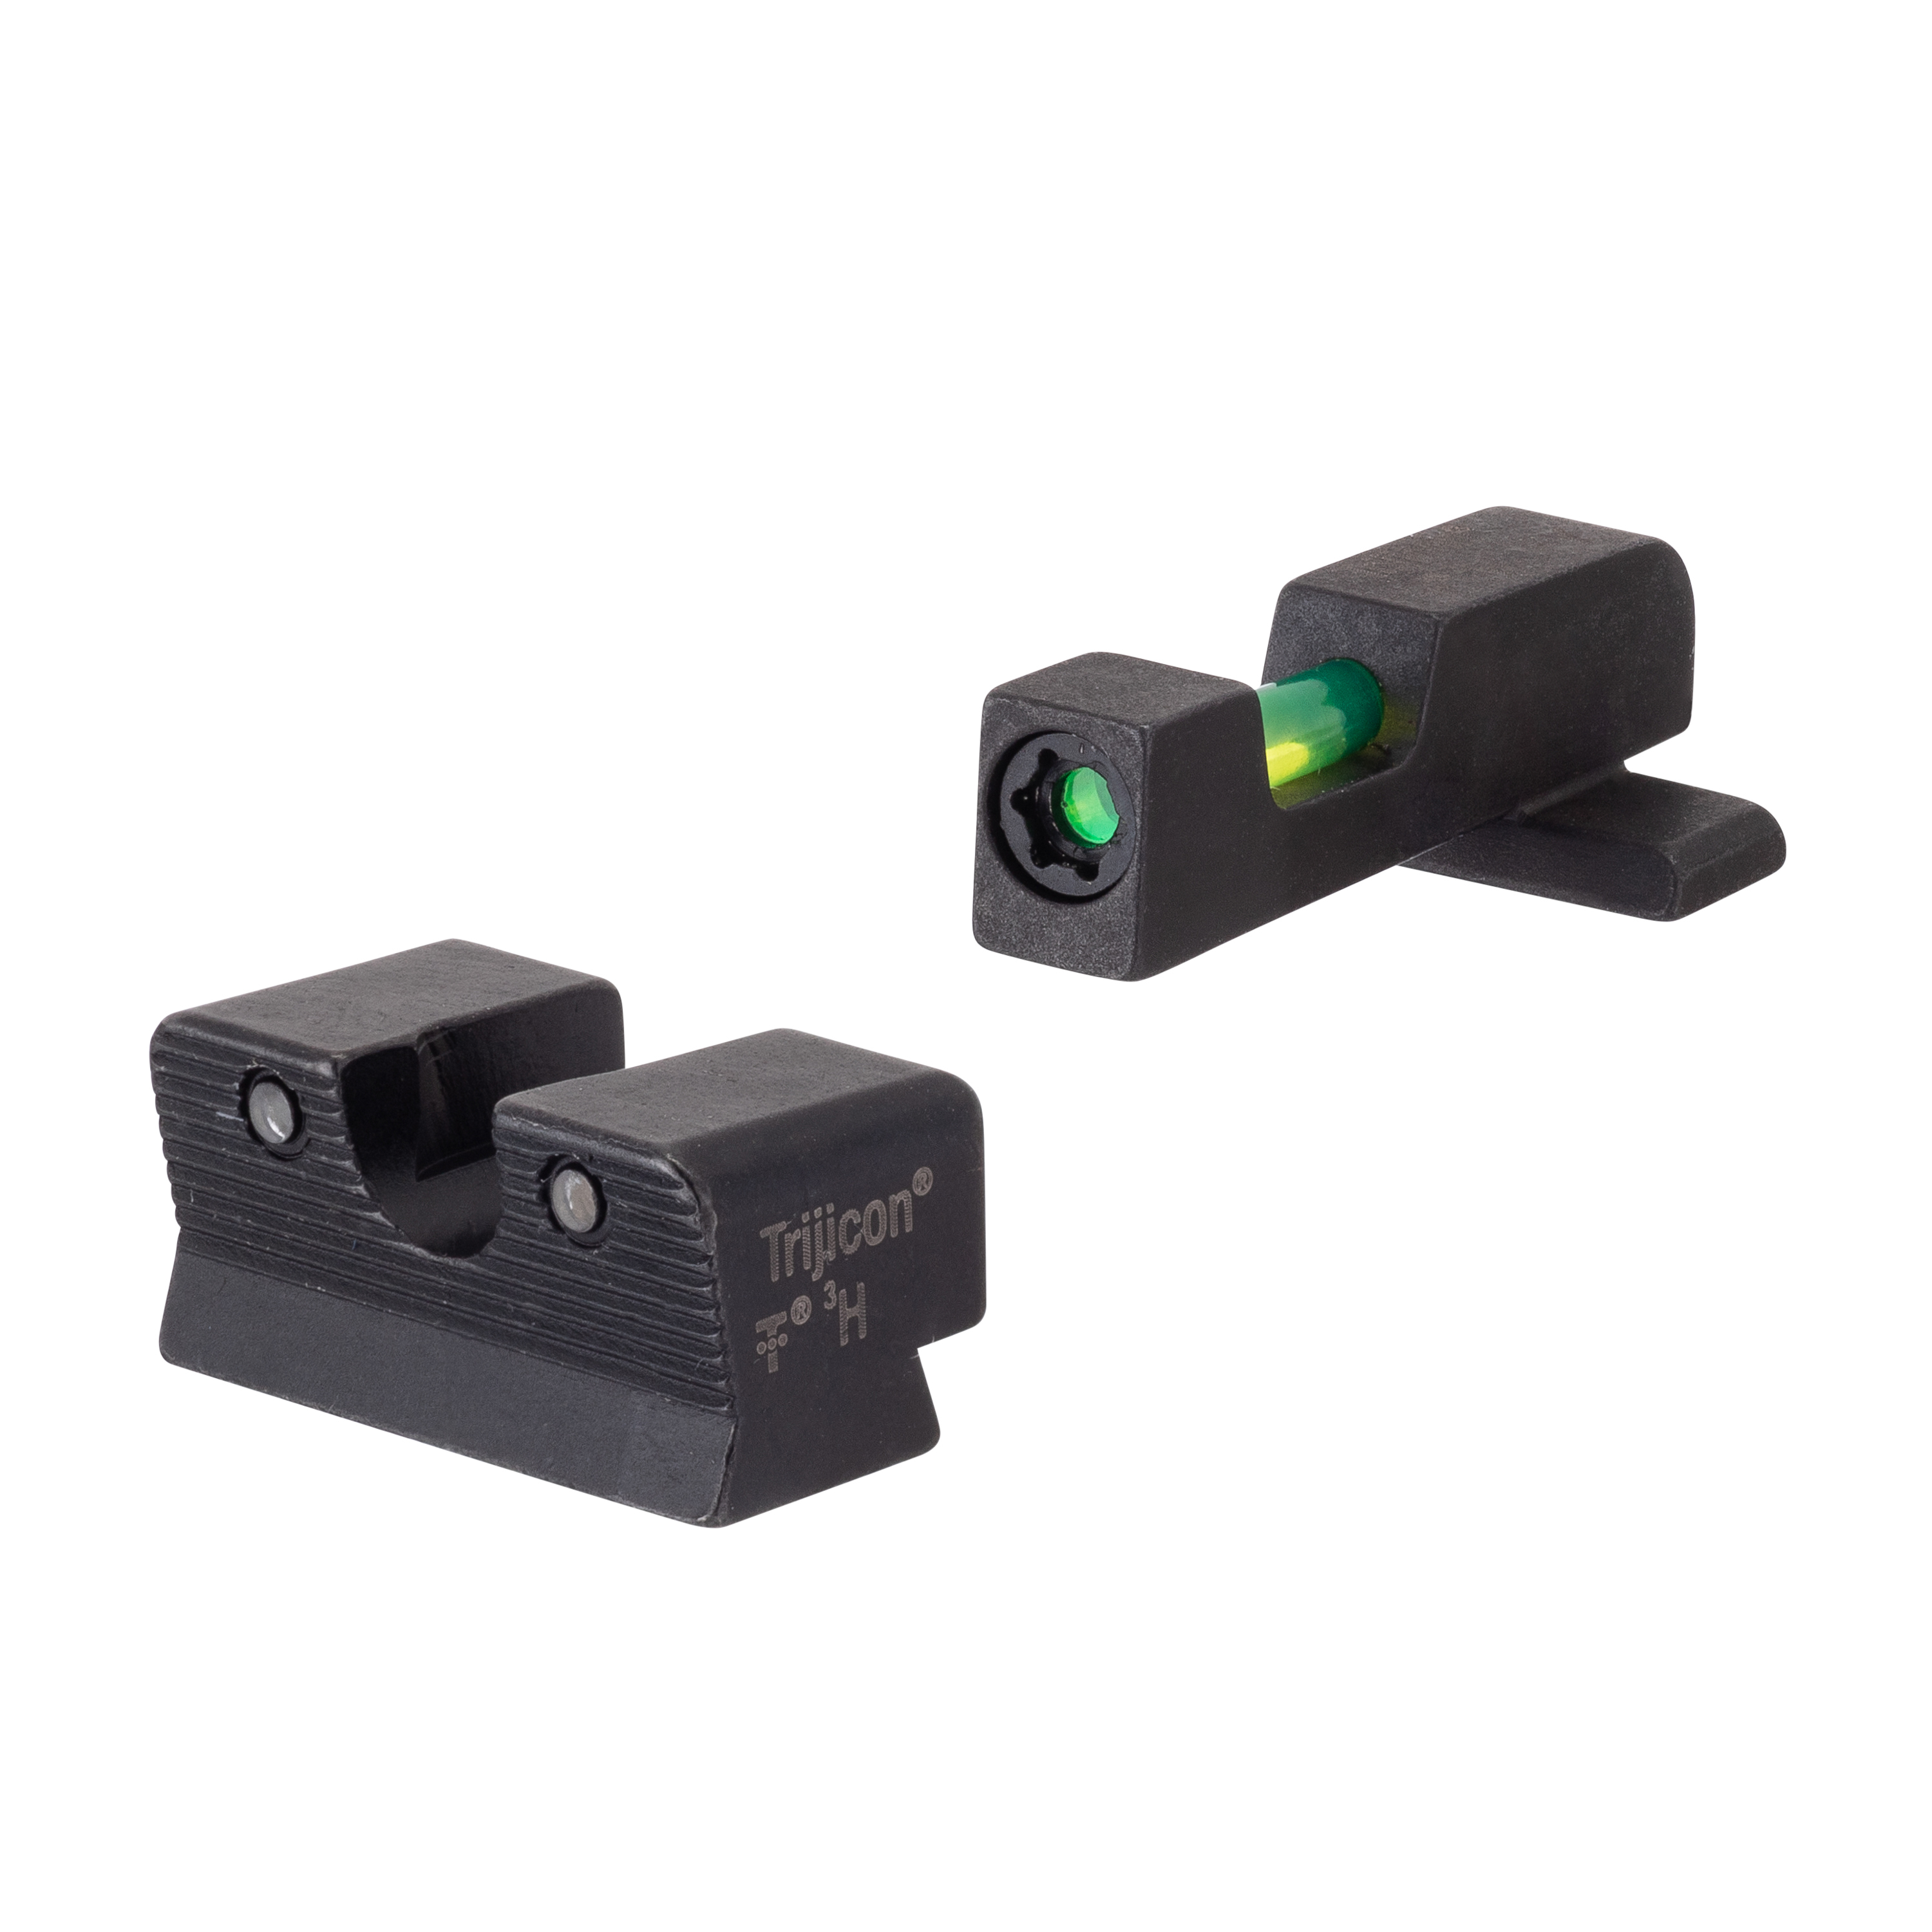 Trijicon DI™ Night Sight Set - for Sig Sauer<sup>®</sup> #8 Front/#8 Rear